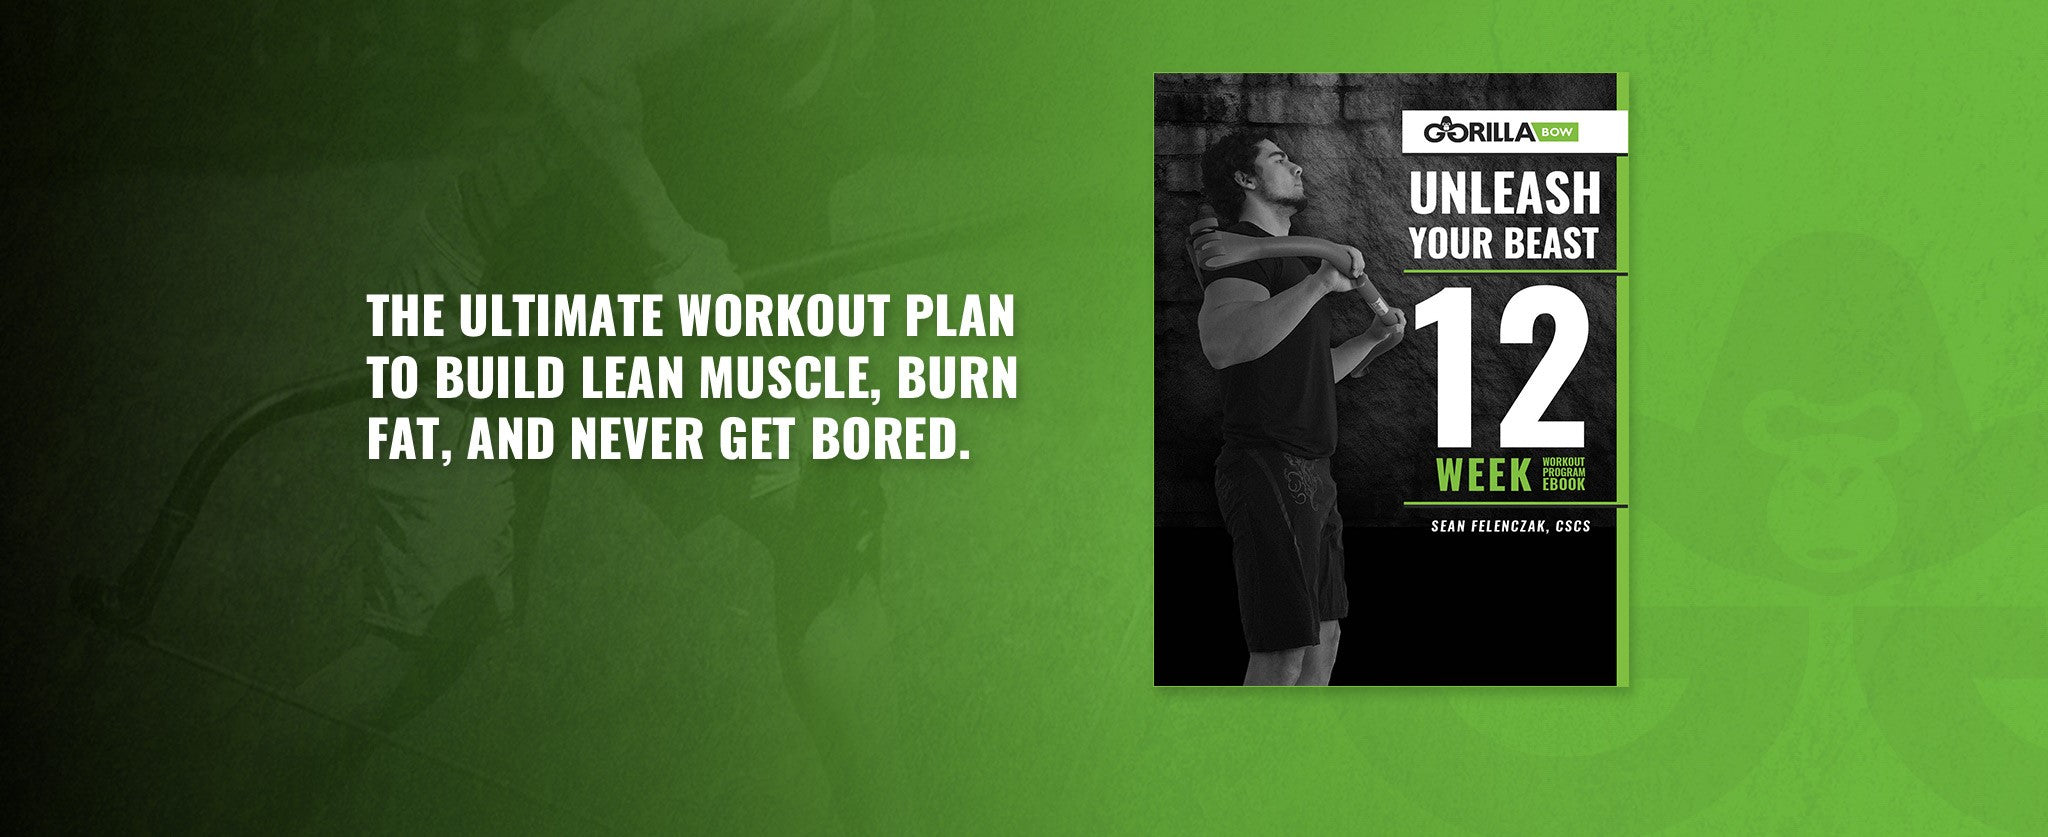 Burn fat and build lean muscle workout